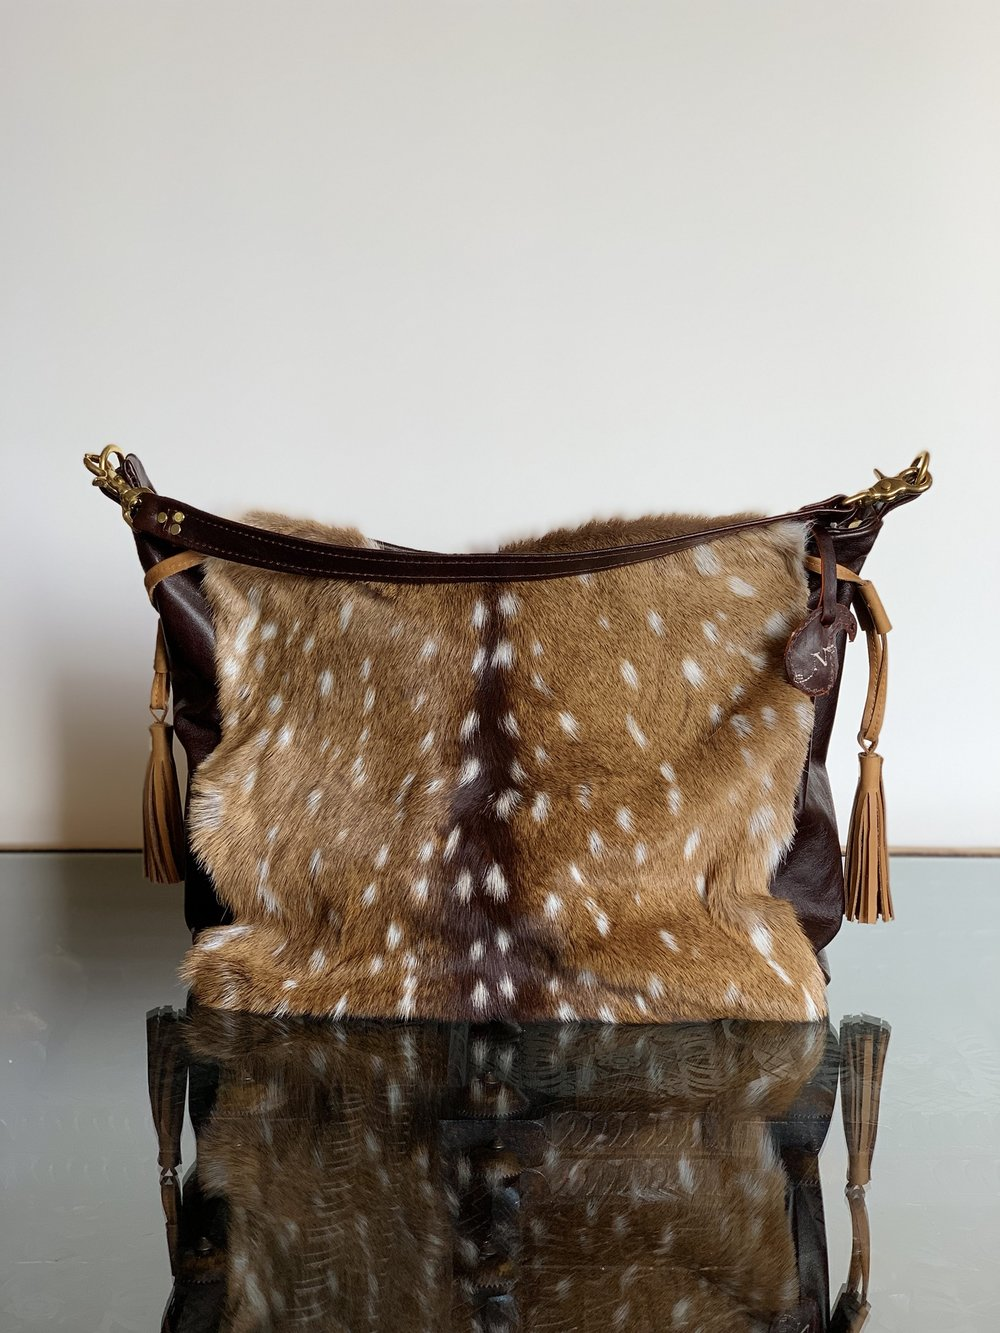 Axis Deer Skin With Fur and Cowhide Leather